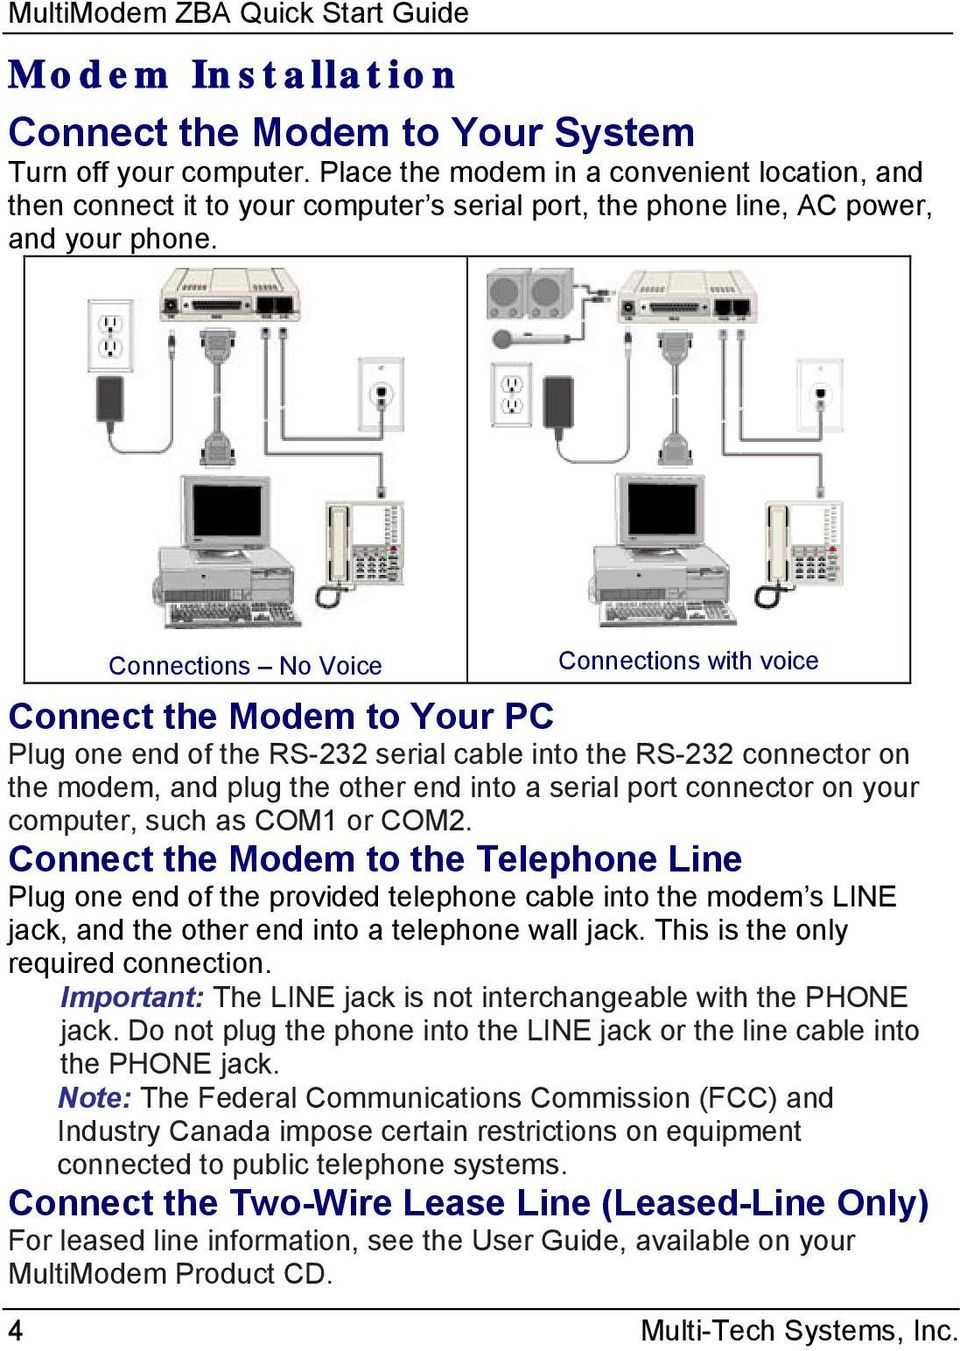 Multimodem Zba Quick Start Guide Mt9234zba Series Usb Serial Port Cable Connection Diagram Usrobotics 56k Dialup Connections No Voice With Connect The Modem To Your Pc Plug One End Of